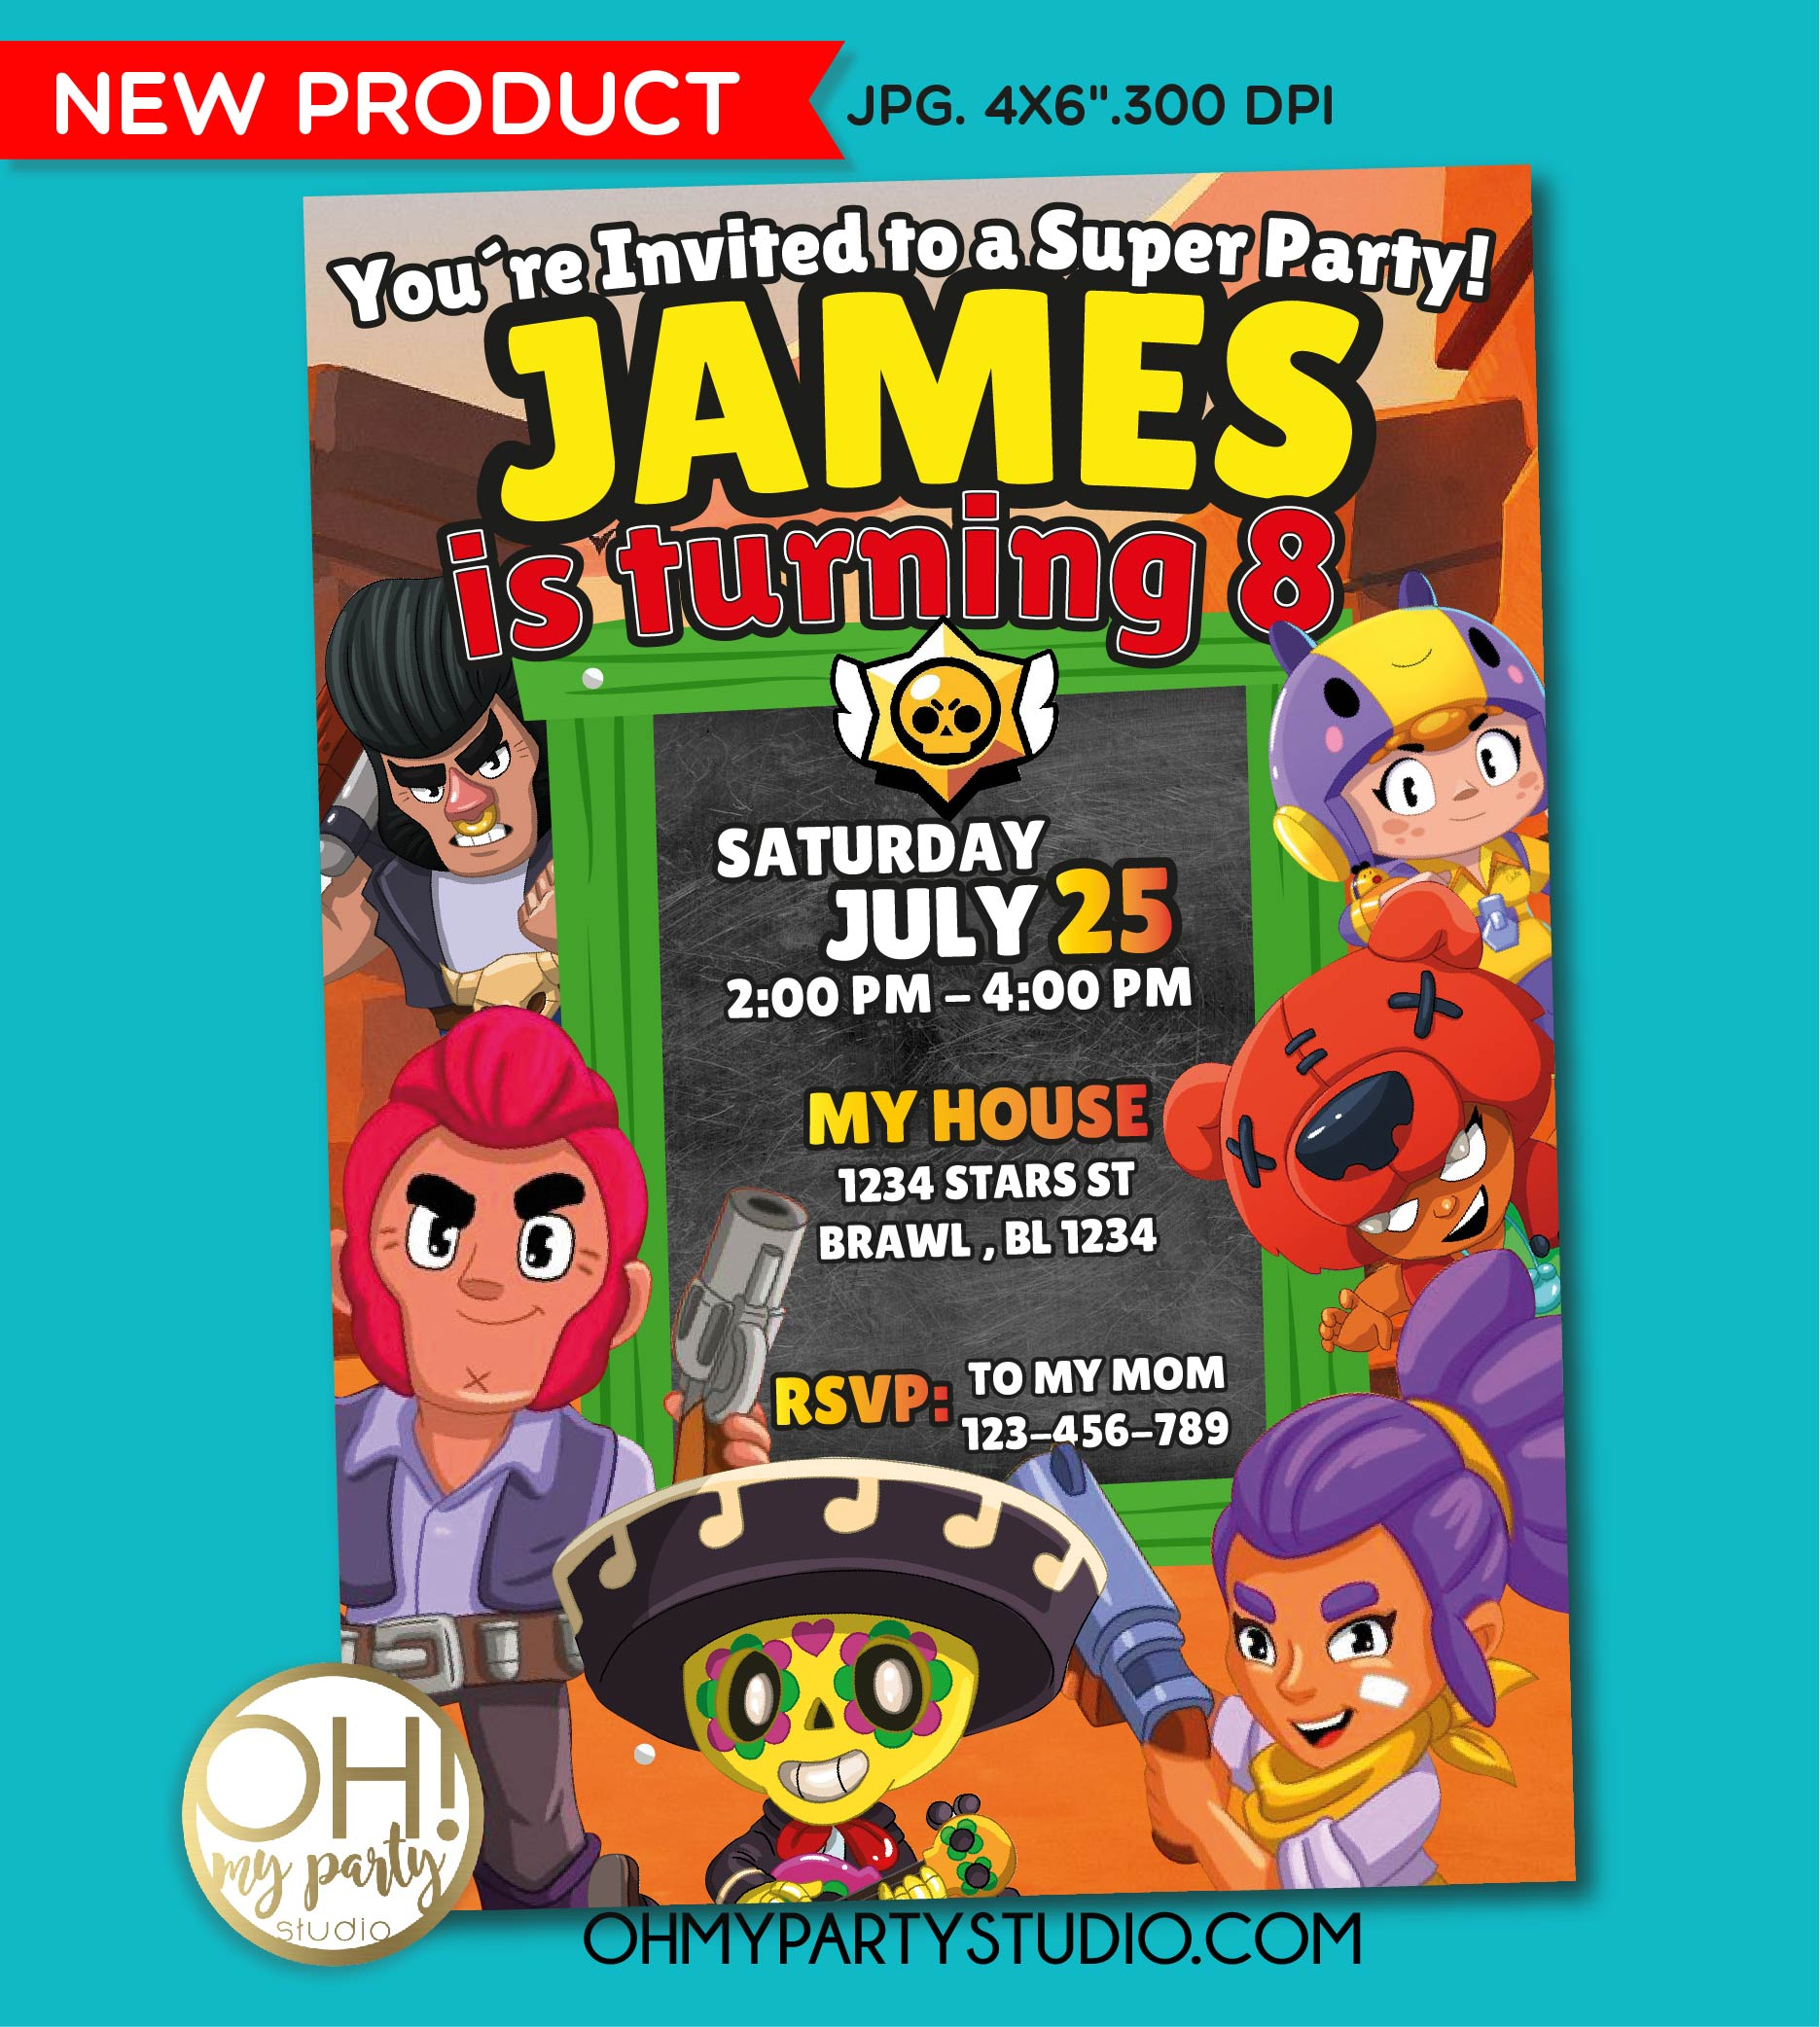 BRAWL STARS BIRTHDAY PARTY, BRAWL STARS PARTY SUPPLIES, BRAWL STARS PARTY DECORATIONS, BRAWL STARS INVITATION, BRAWL STARS INVITATIONS, BRAWL STARS INVITE, BRAWL STARS PARTY IDEAS, BRAWL STARS PARTY INVITATION, BRAWL STARS, PARTY SUPPLIES, BRAWL STARS DIGITAL INVITATION